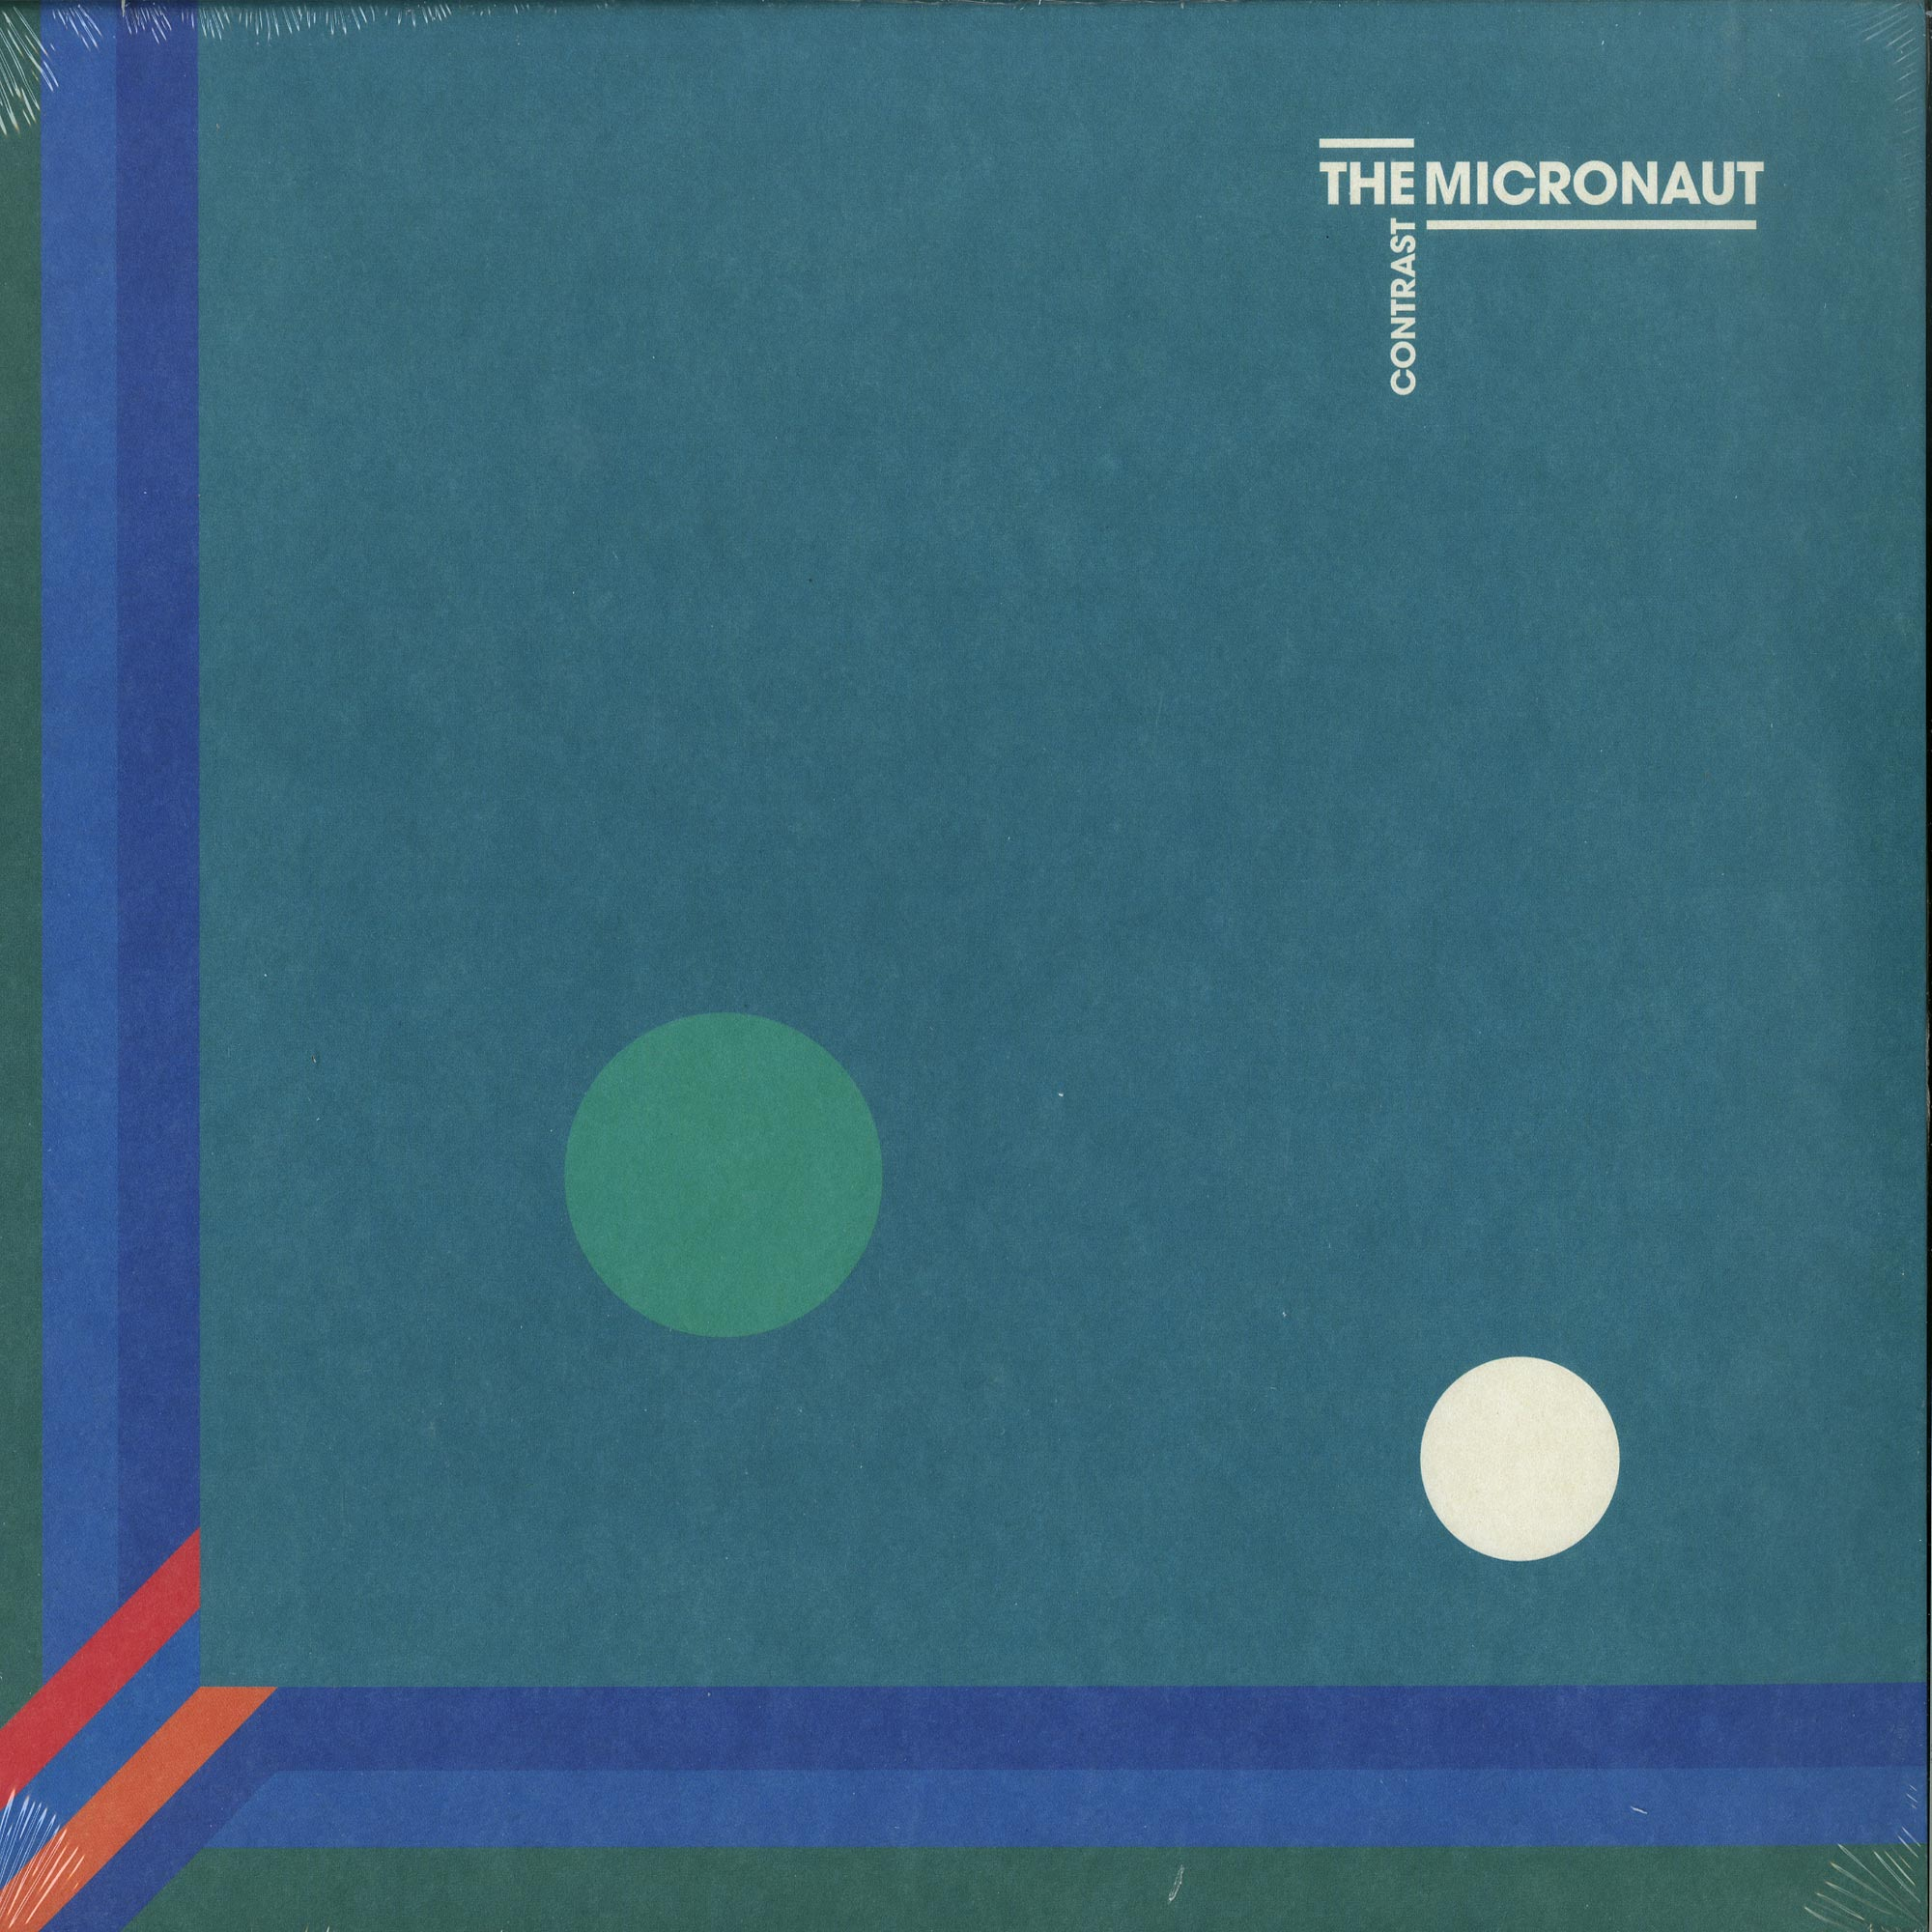 The Micronaut - CONTRAST